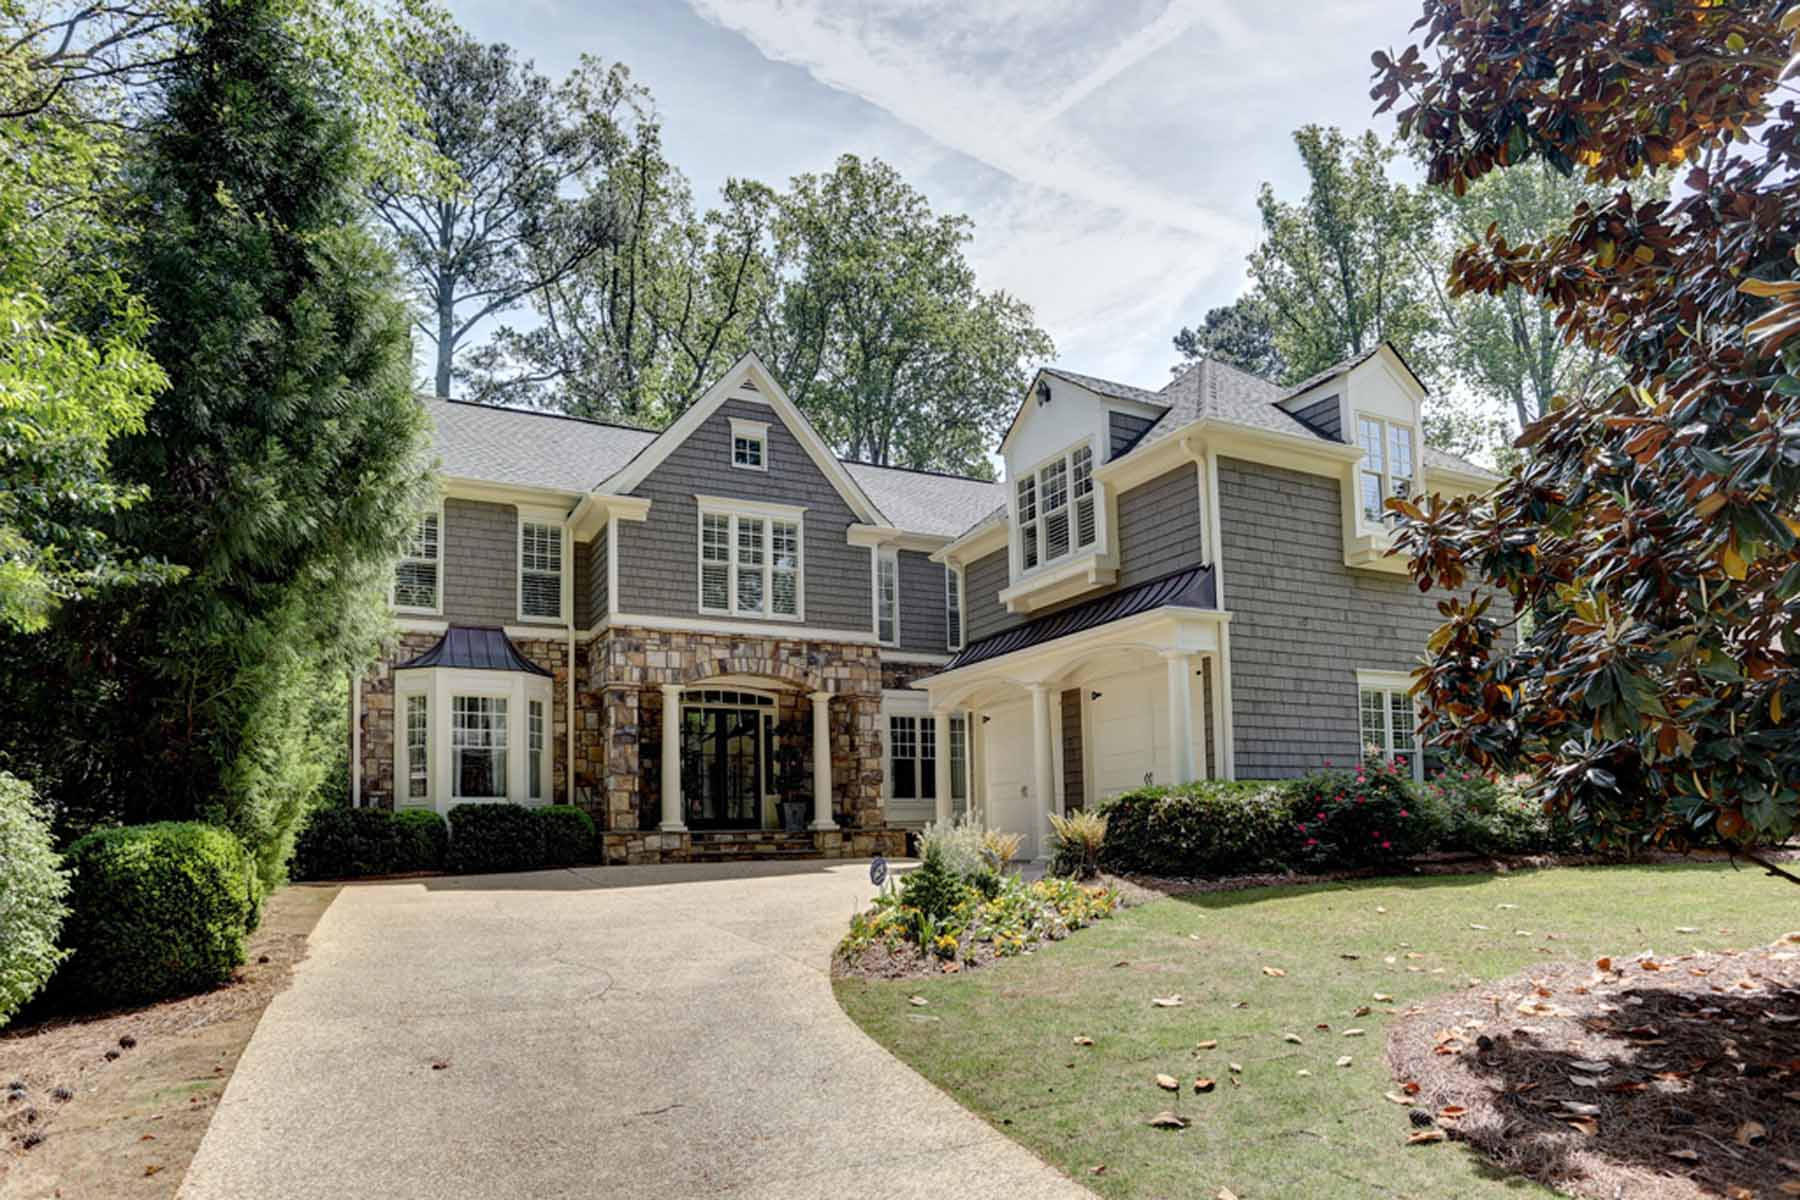 一戸建て のために 売買 アット Remarkable Spitzmiller & Norris custom home in Morningside 1675 Wildwood Road NE Morningside, Atlanta, ジョージア, 30306 アメリカ合衆国